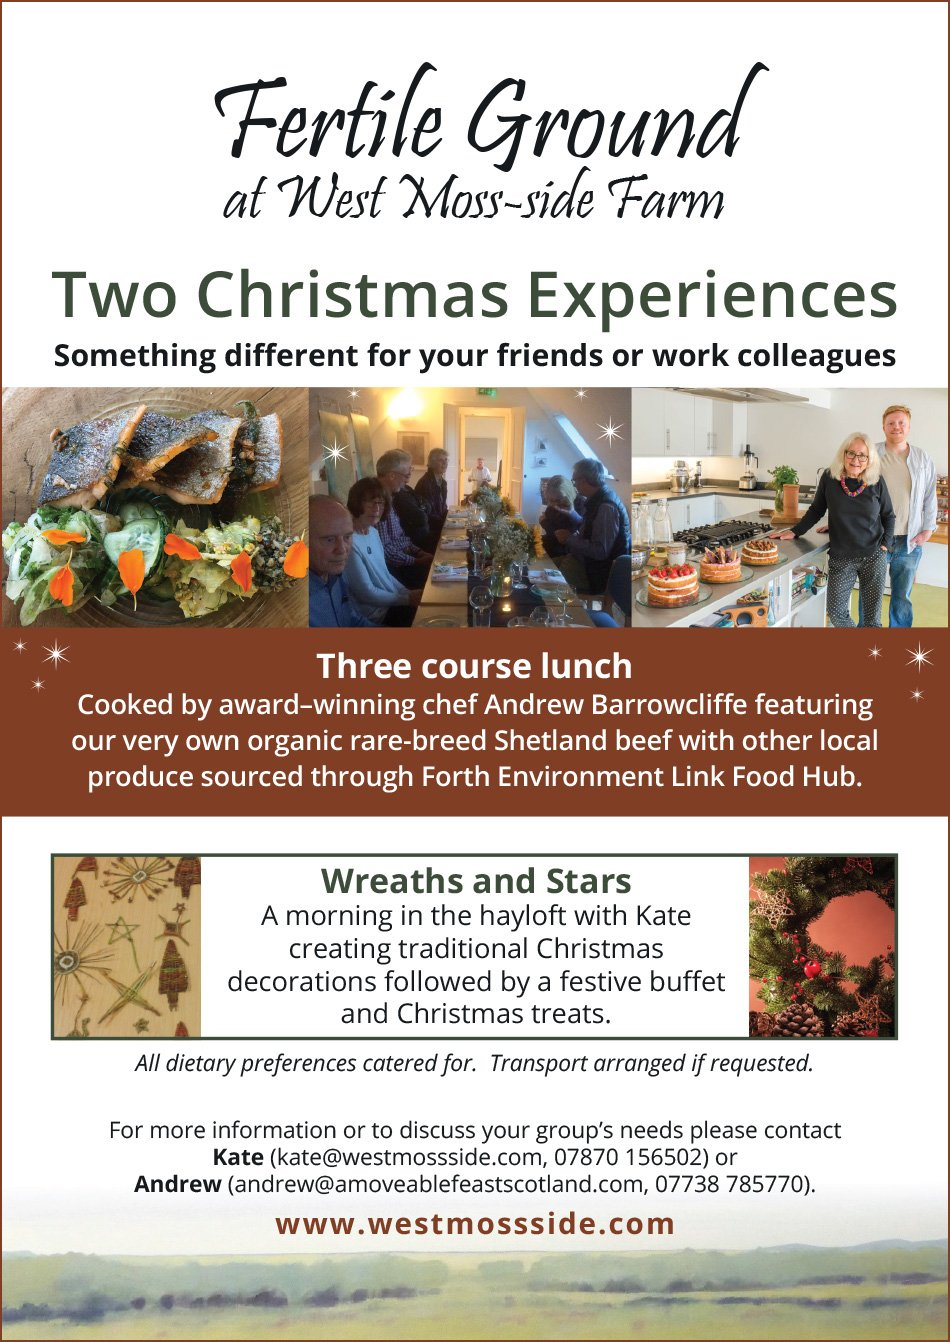 Christmas Experiences with Fertile Ground at West Moss-side Farm